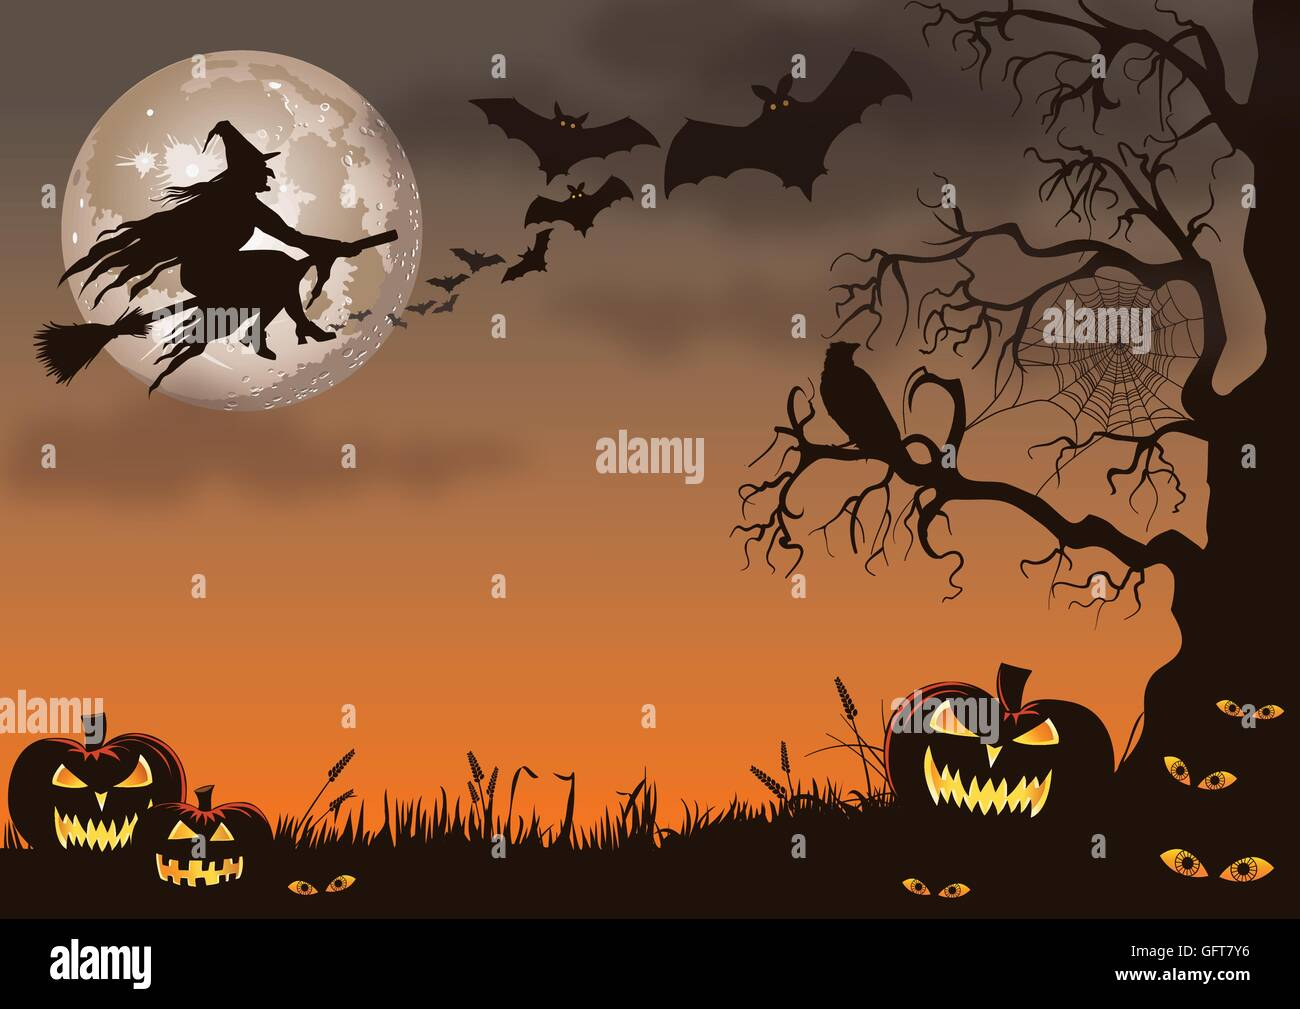 Halloween background with a witch, bats, pumpkins, peering eyes and a creepy tree. - Stock Image